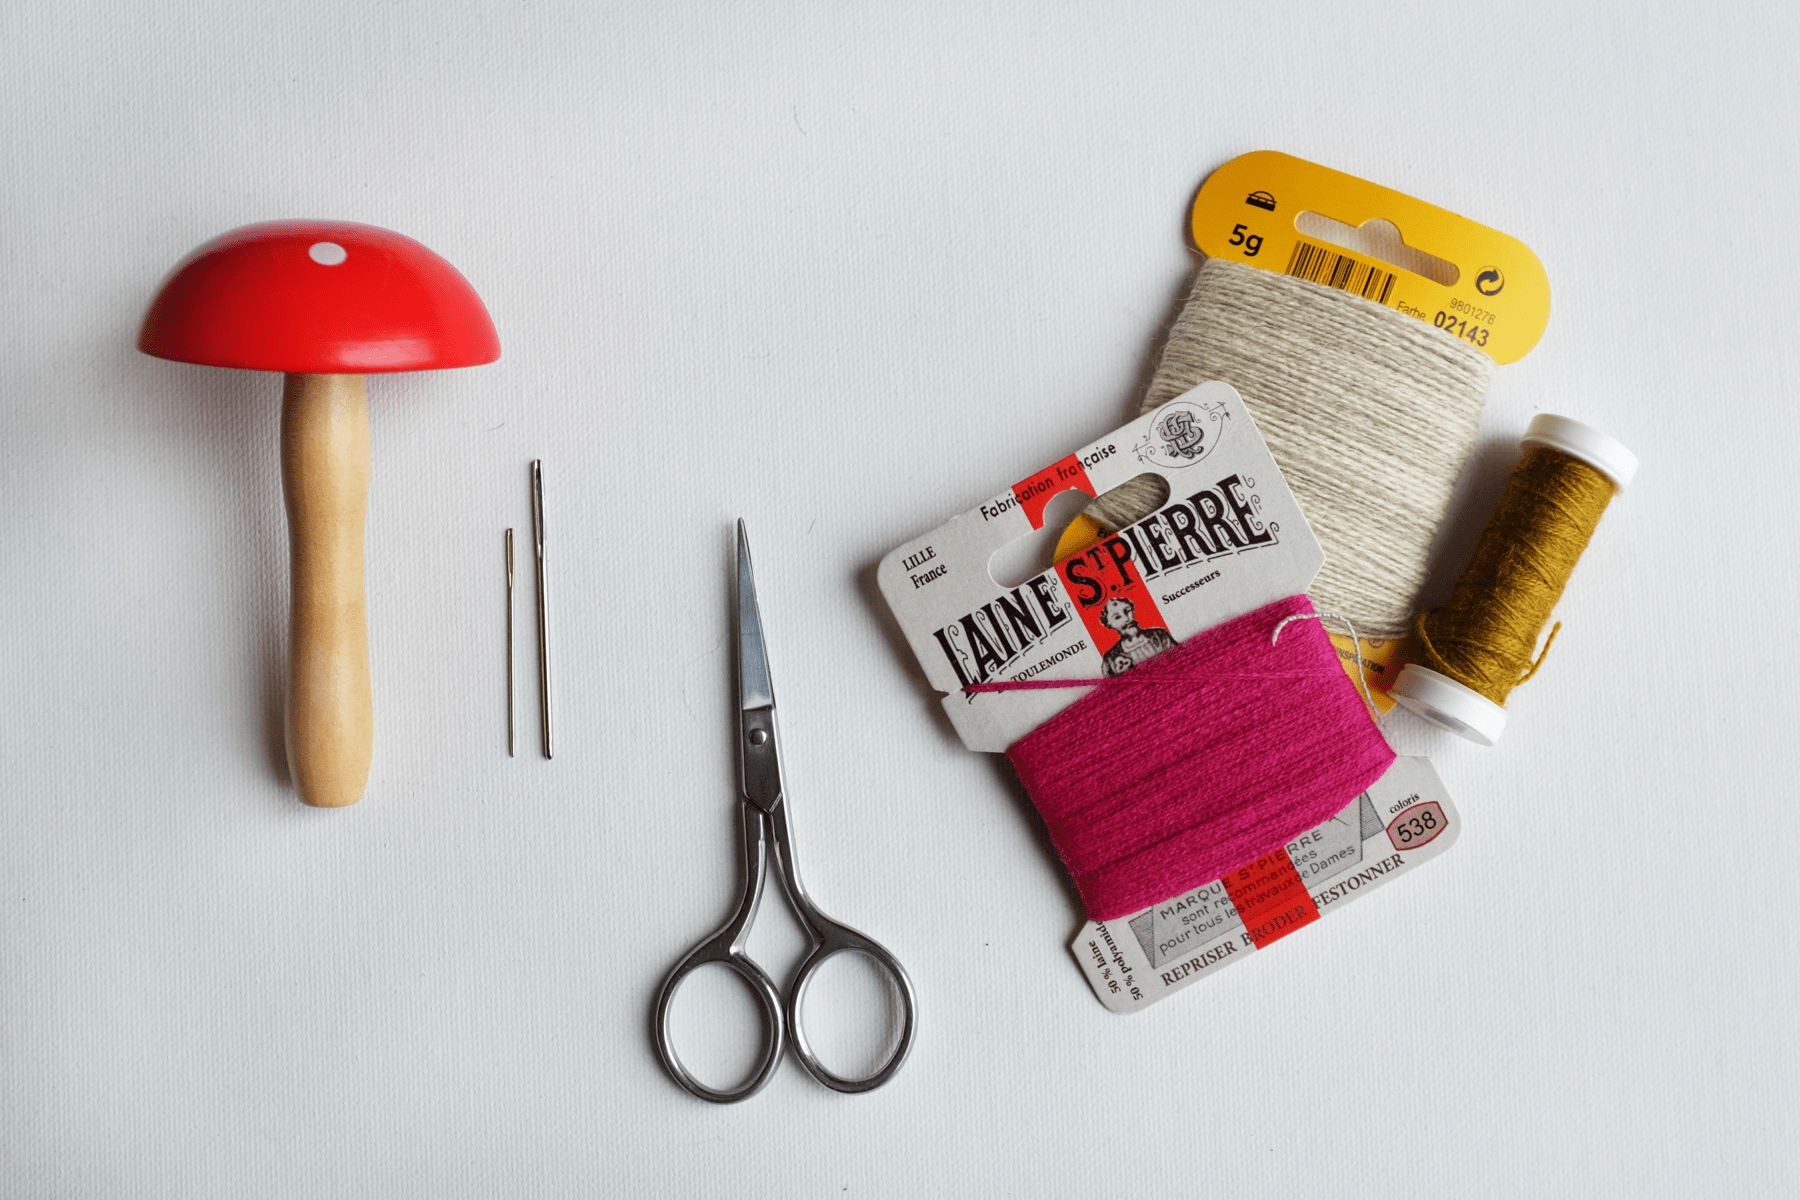 Image description: A flat-lay photo of mending supplies including a wooden darning mushroom, needles, embroidery scissors, and thread.